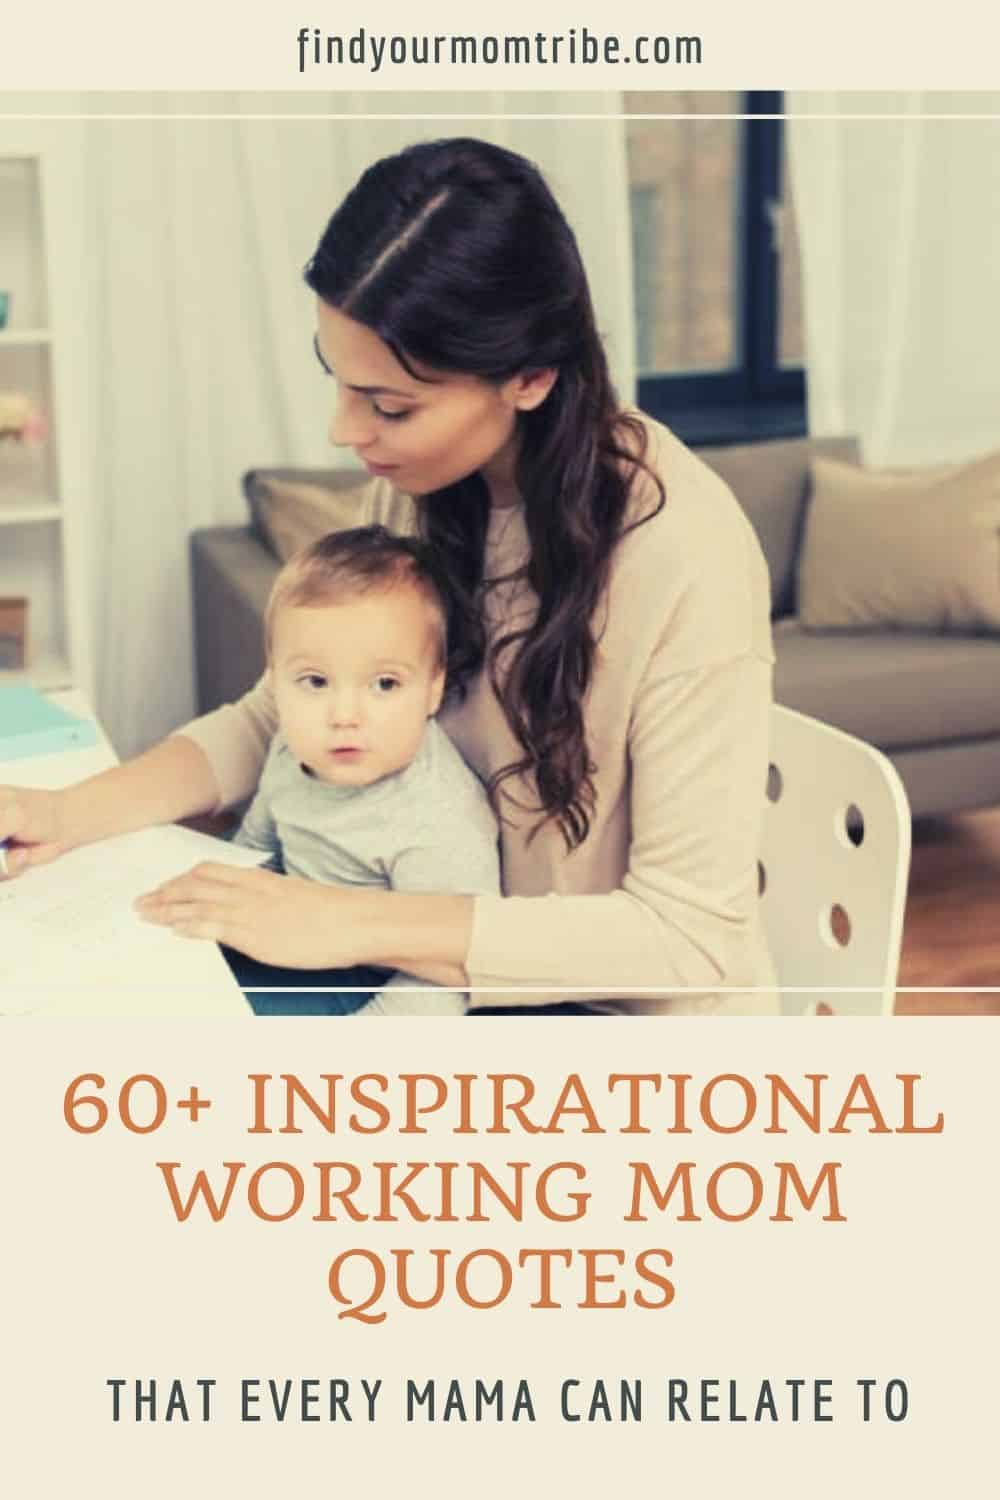 60+ Inspirational Working Mom Quotes That Every Mama Can Relate To